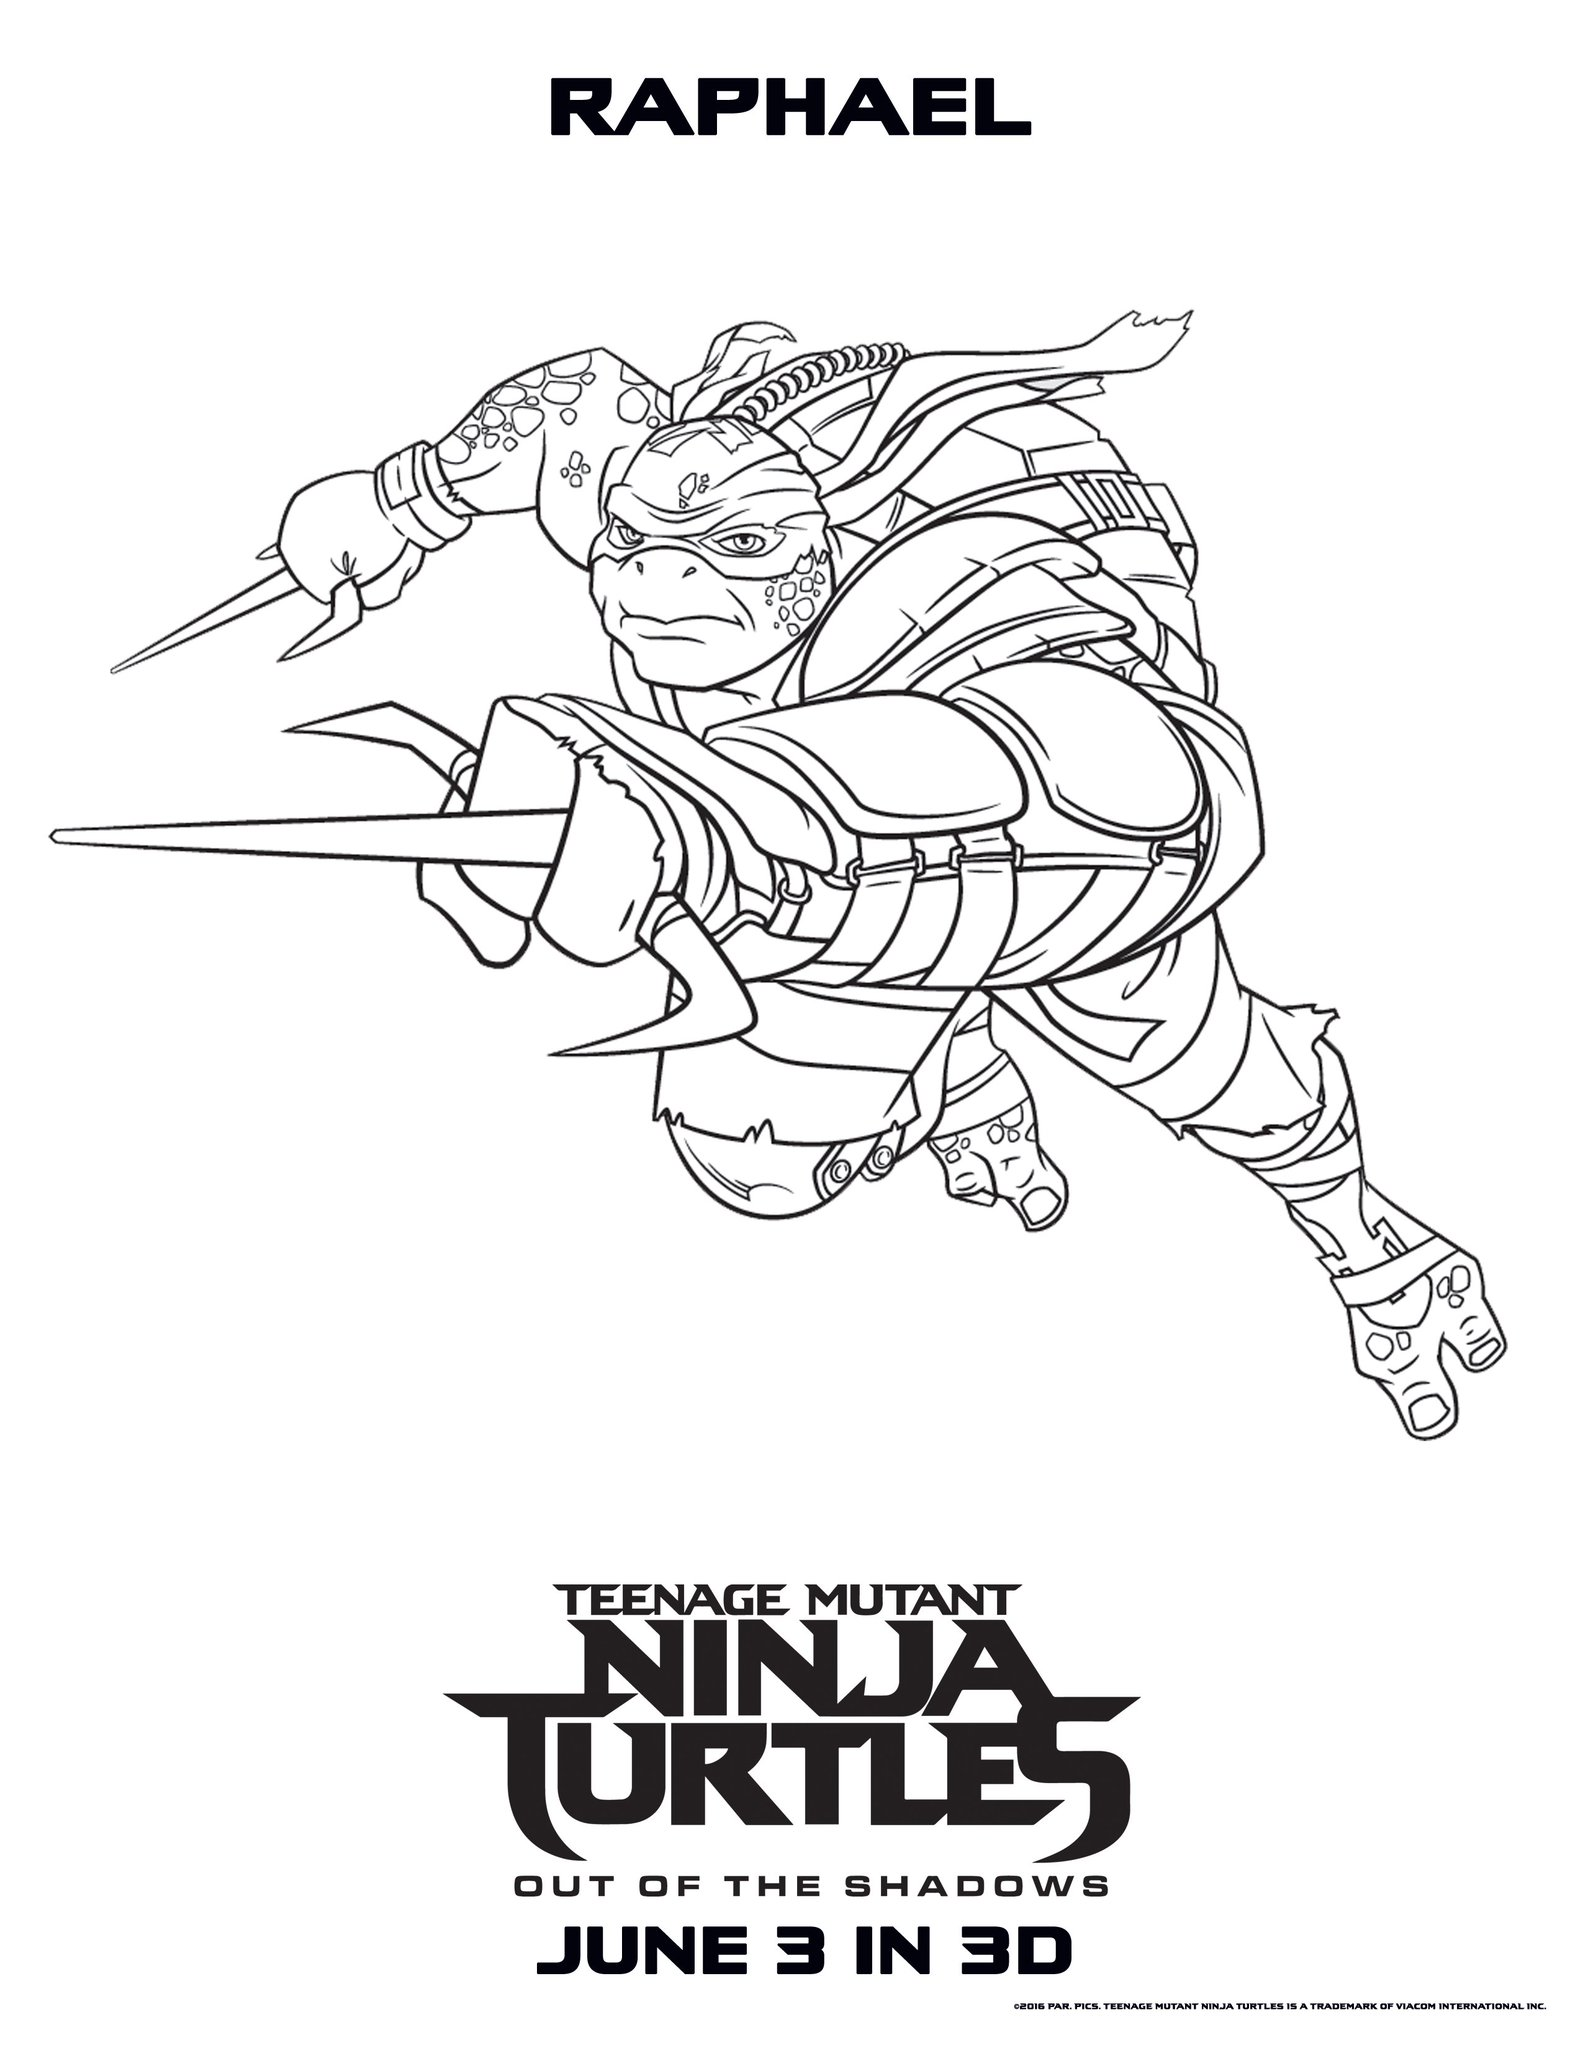 Best 30 Tmnt Mikey Coloring Pages for Boys - Best Coloring ...